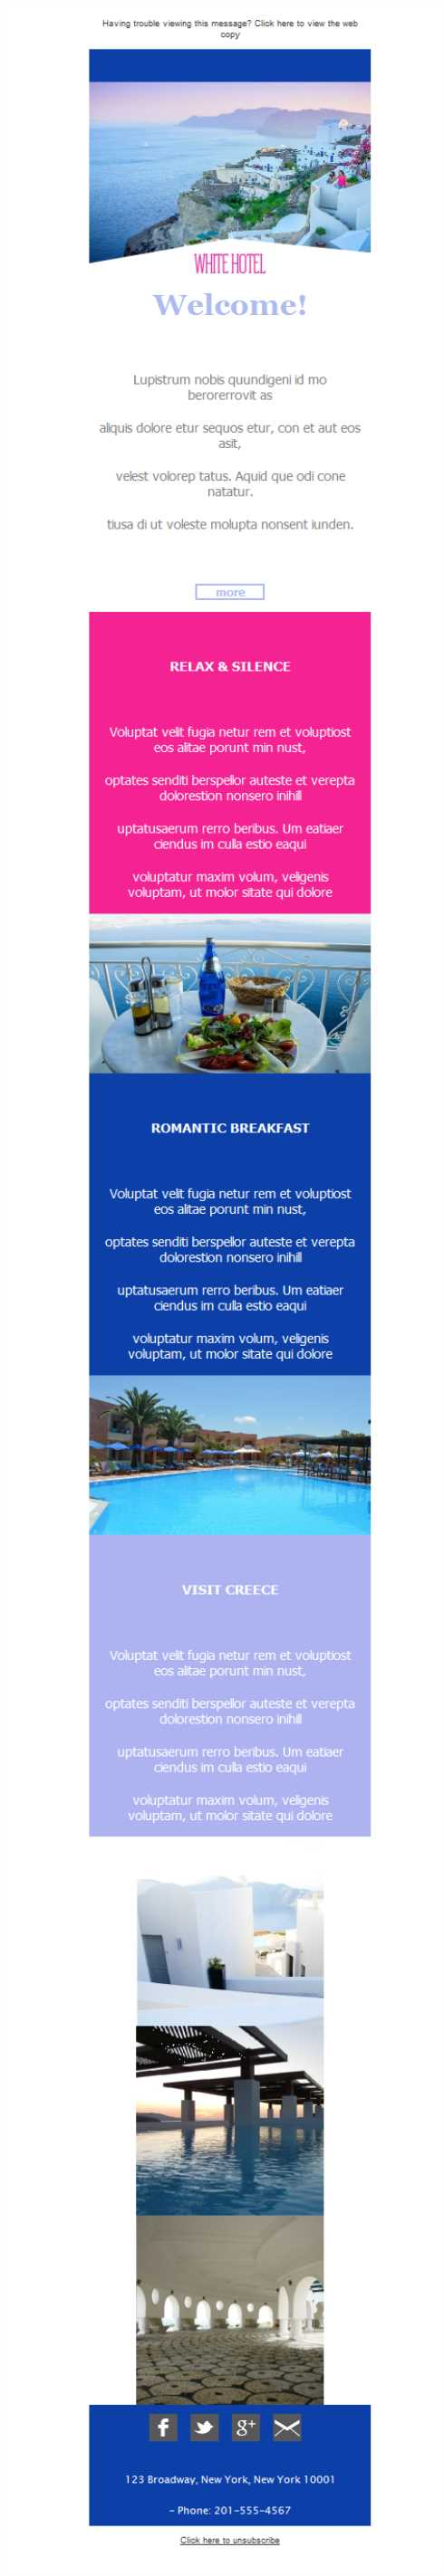 Templates Emailing Hotel Ocean View Sarbacane